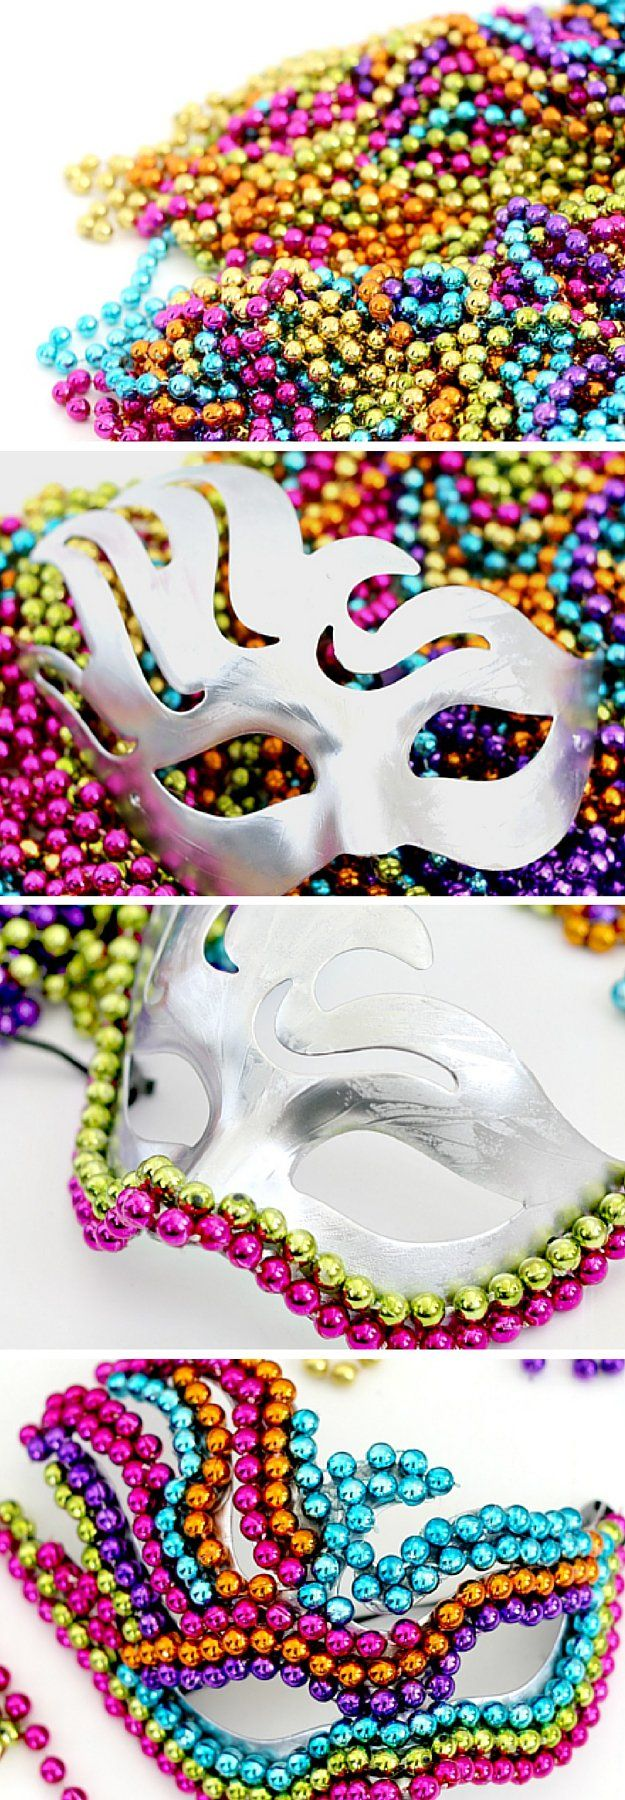 DIY Beaded Mardi Gras Mask | Learn How To Make A Festive Mask With These 7 Easy DIY Mardi Gras Masks Tutorials by DIY Ready at http://diyready.com/7-diy-mardi-gras-masks-diy-tutorials/